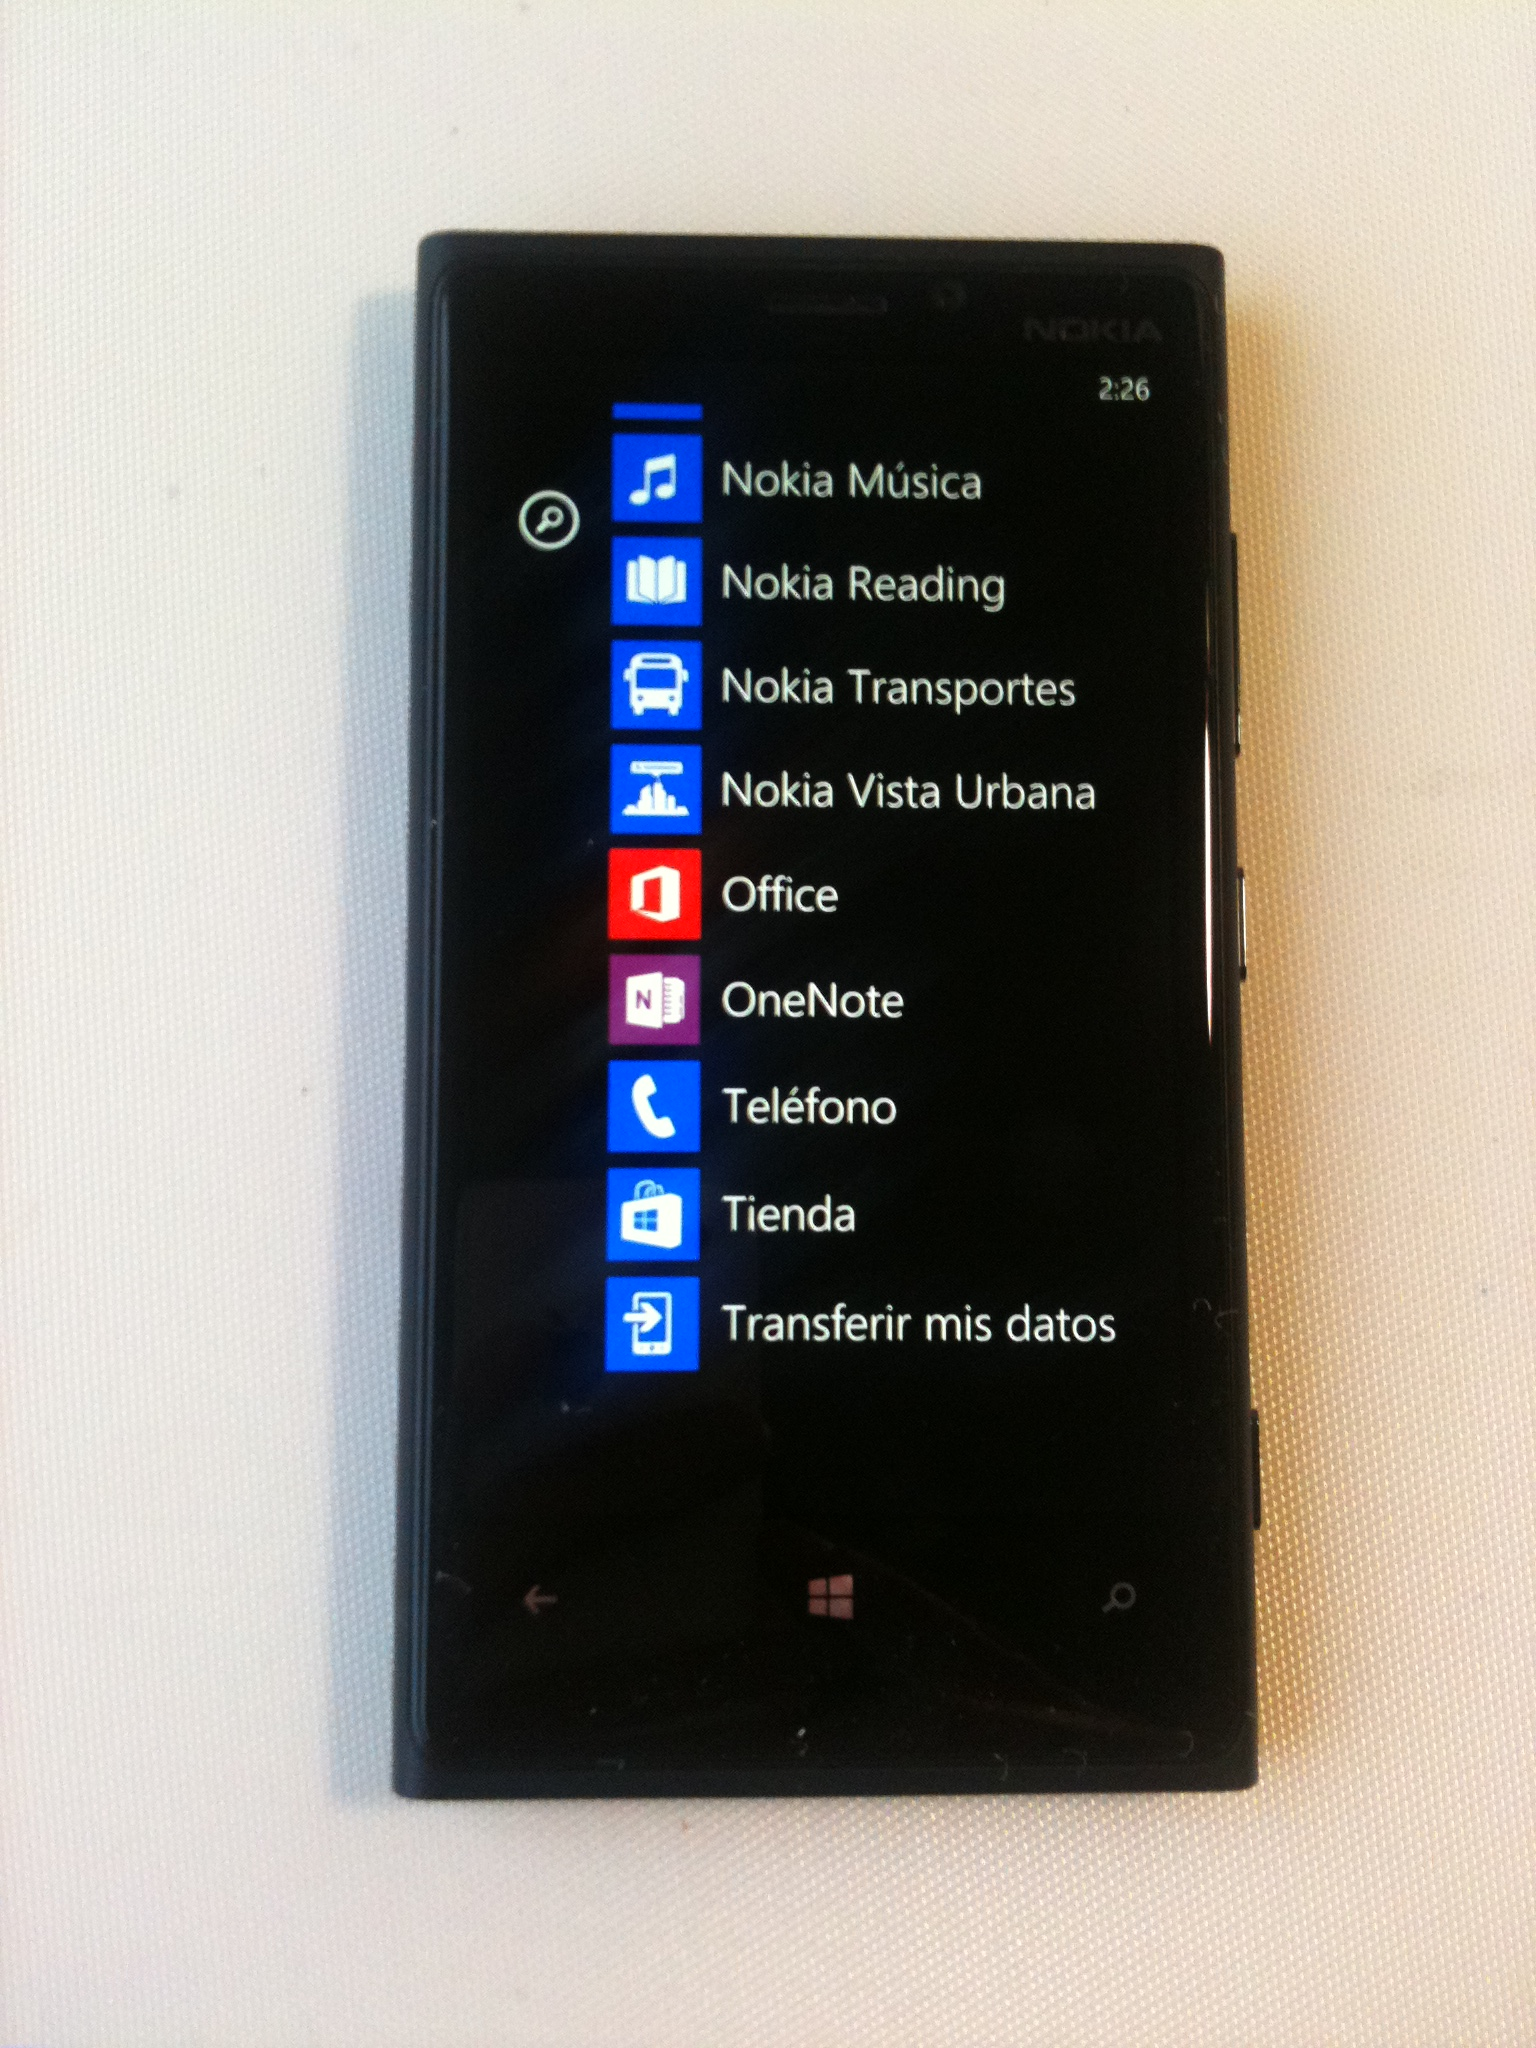 zune nokia lumia 800 windows 7 symptoms were